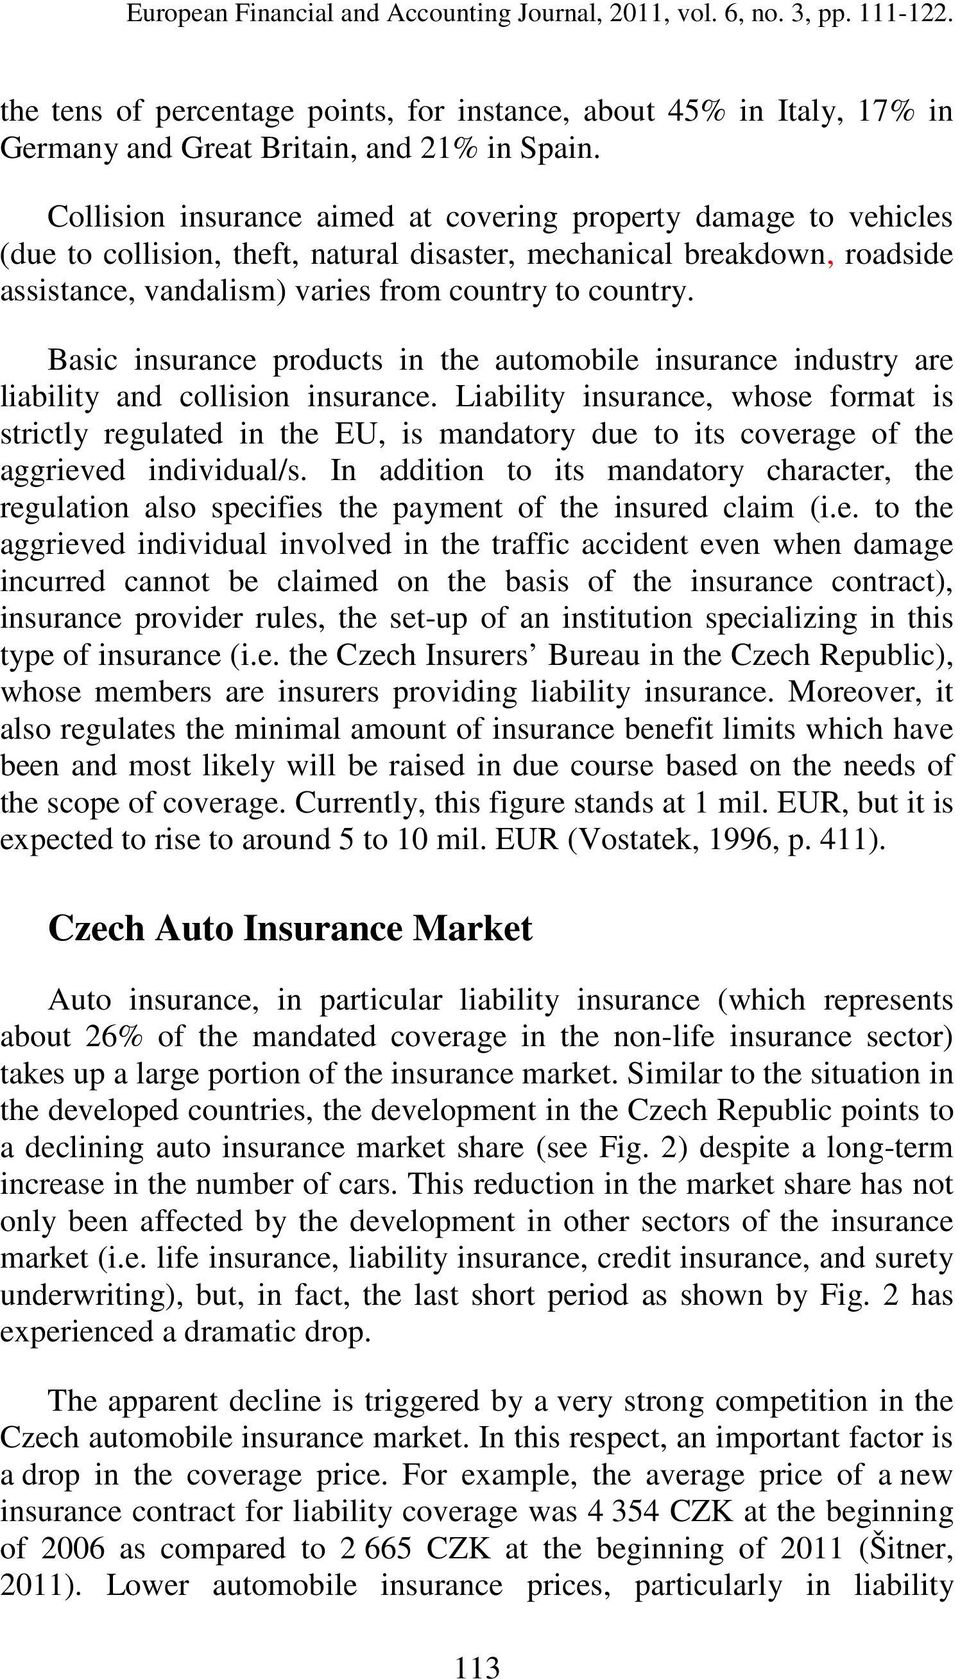 Basic insurance products in the automobile insurance industry are liability and collision insurance.